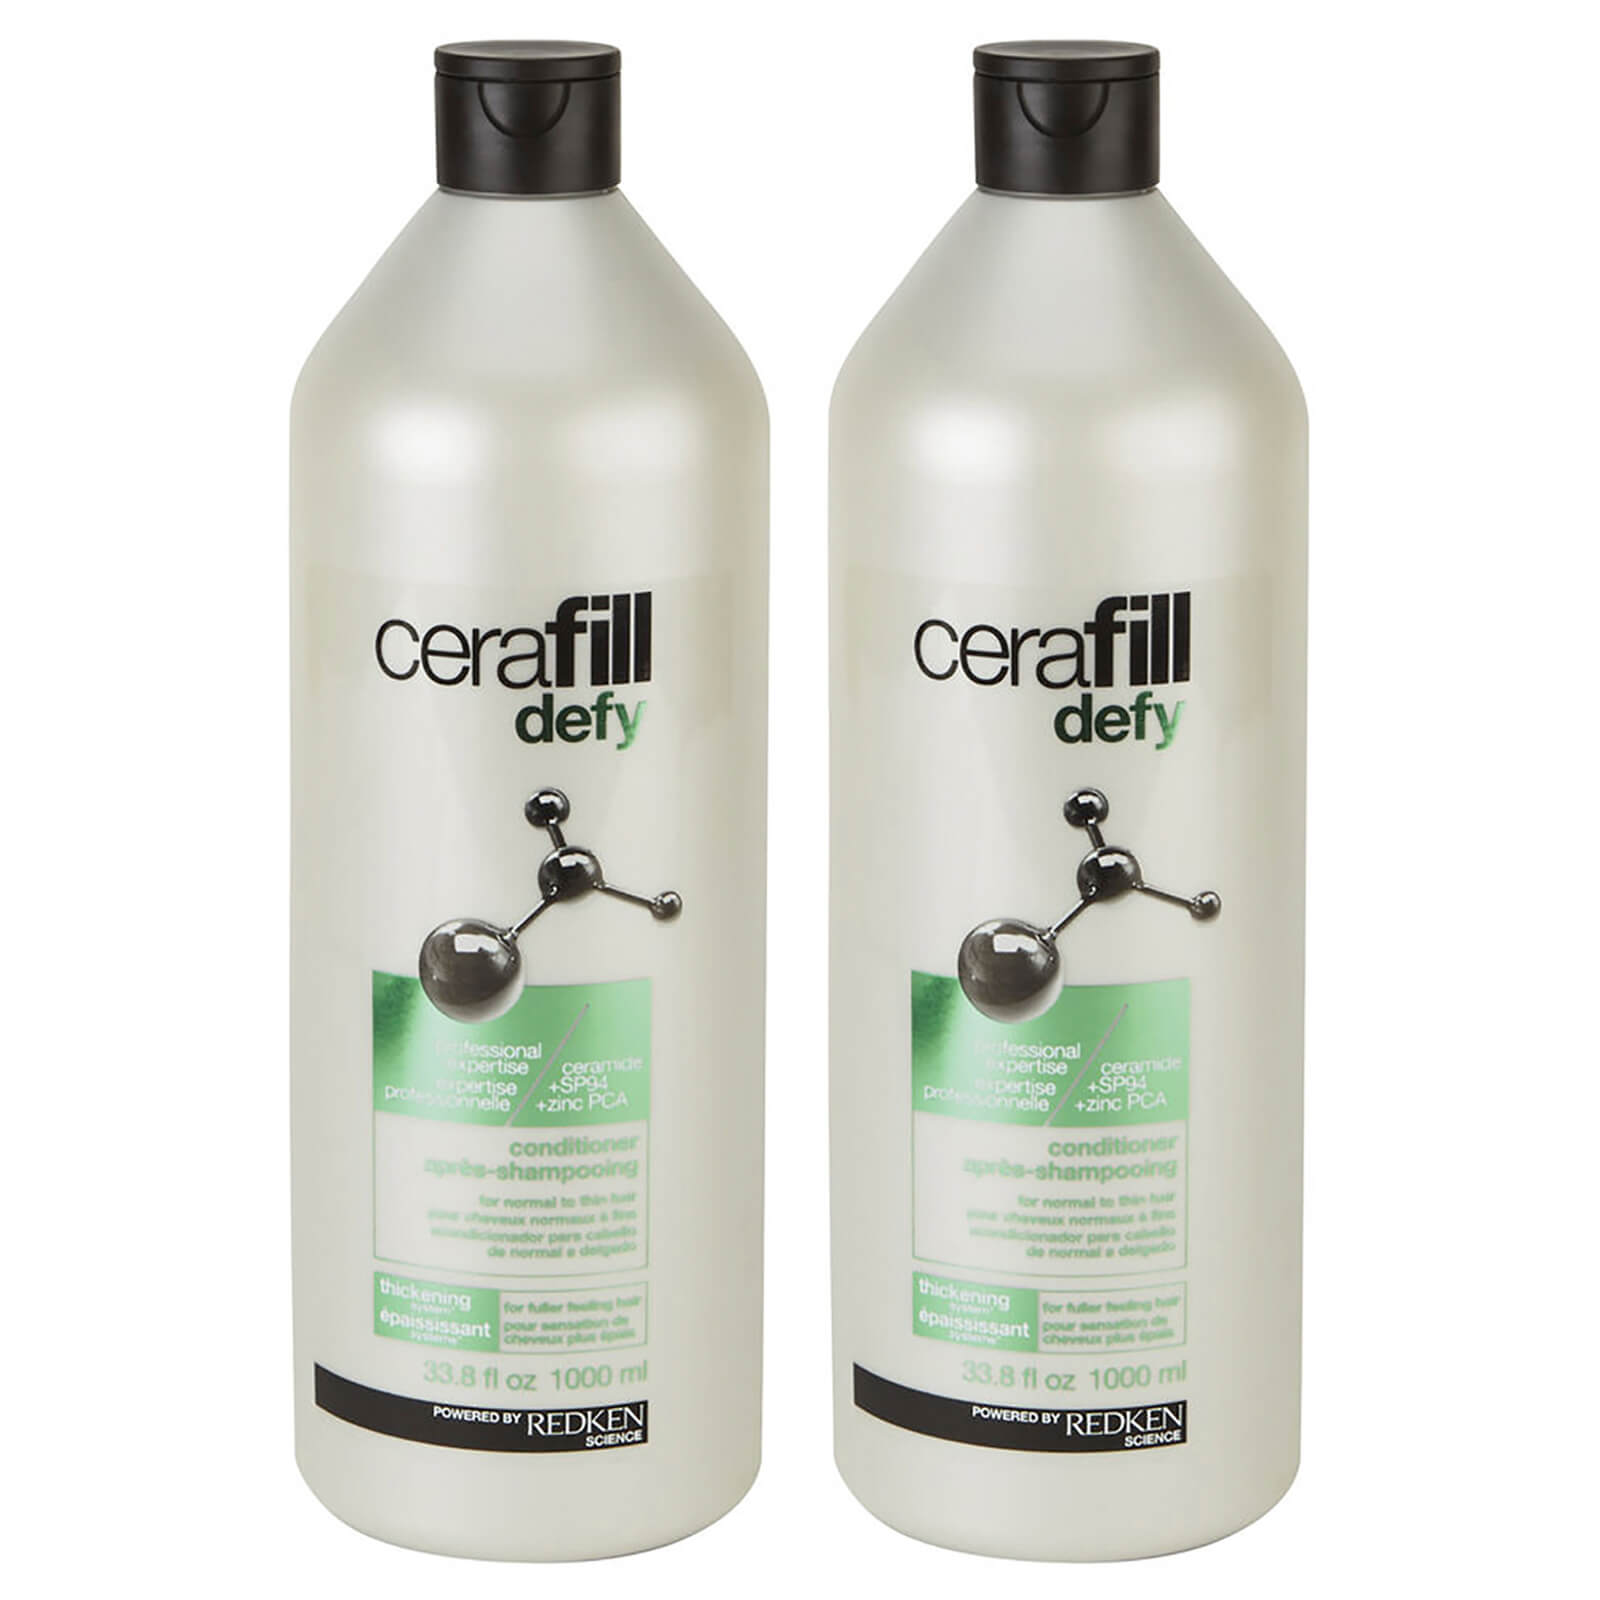 Redken Cerafill Defy Conditioner Duo (2 x 1000ml)